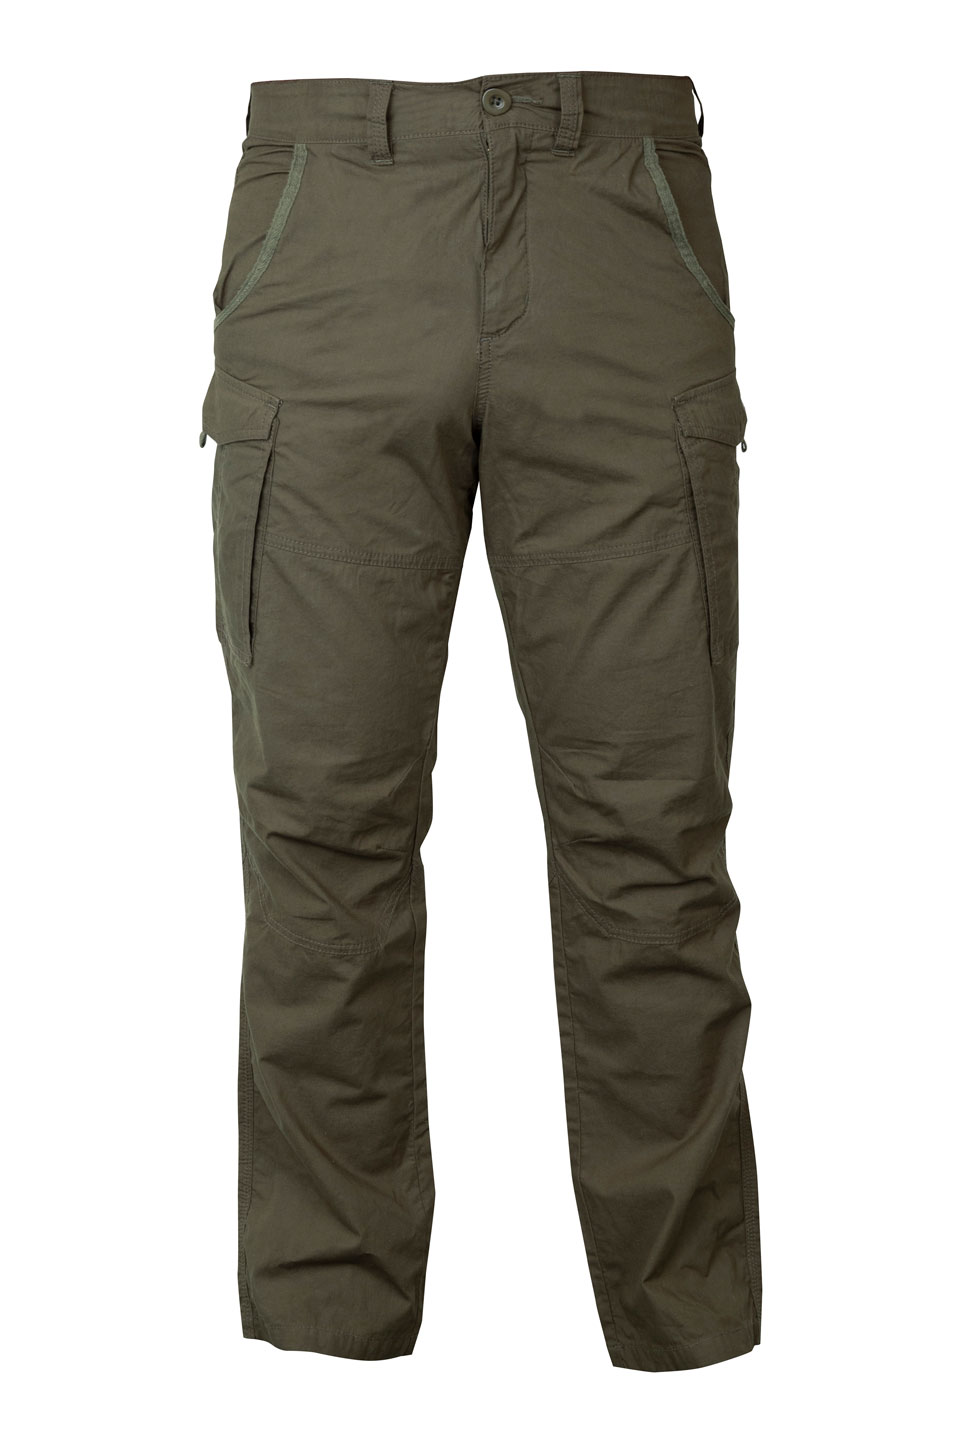 fox-collection-combat-trousers_green-silver_maingif